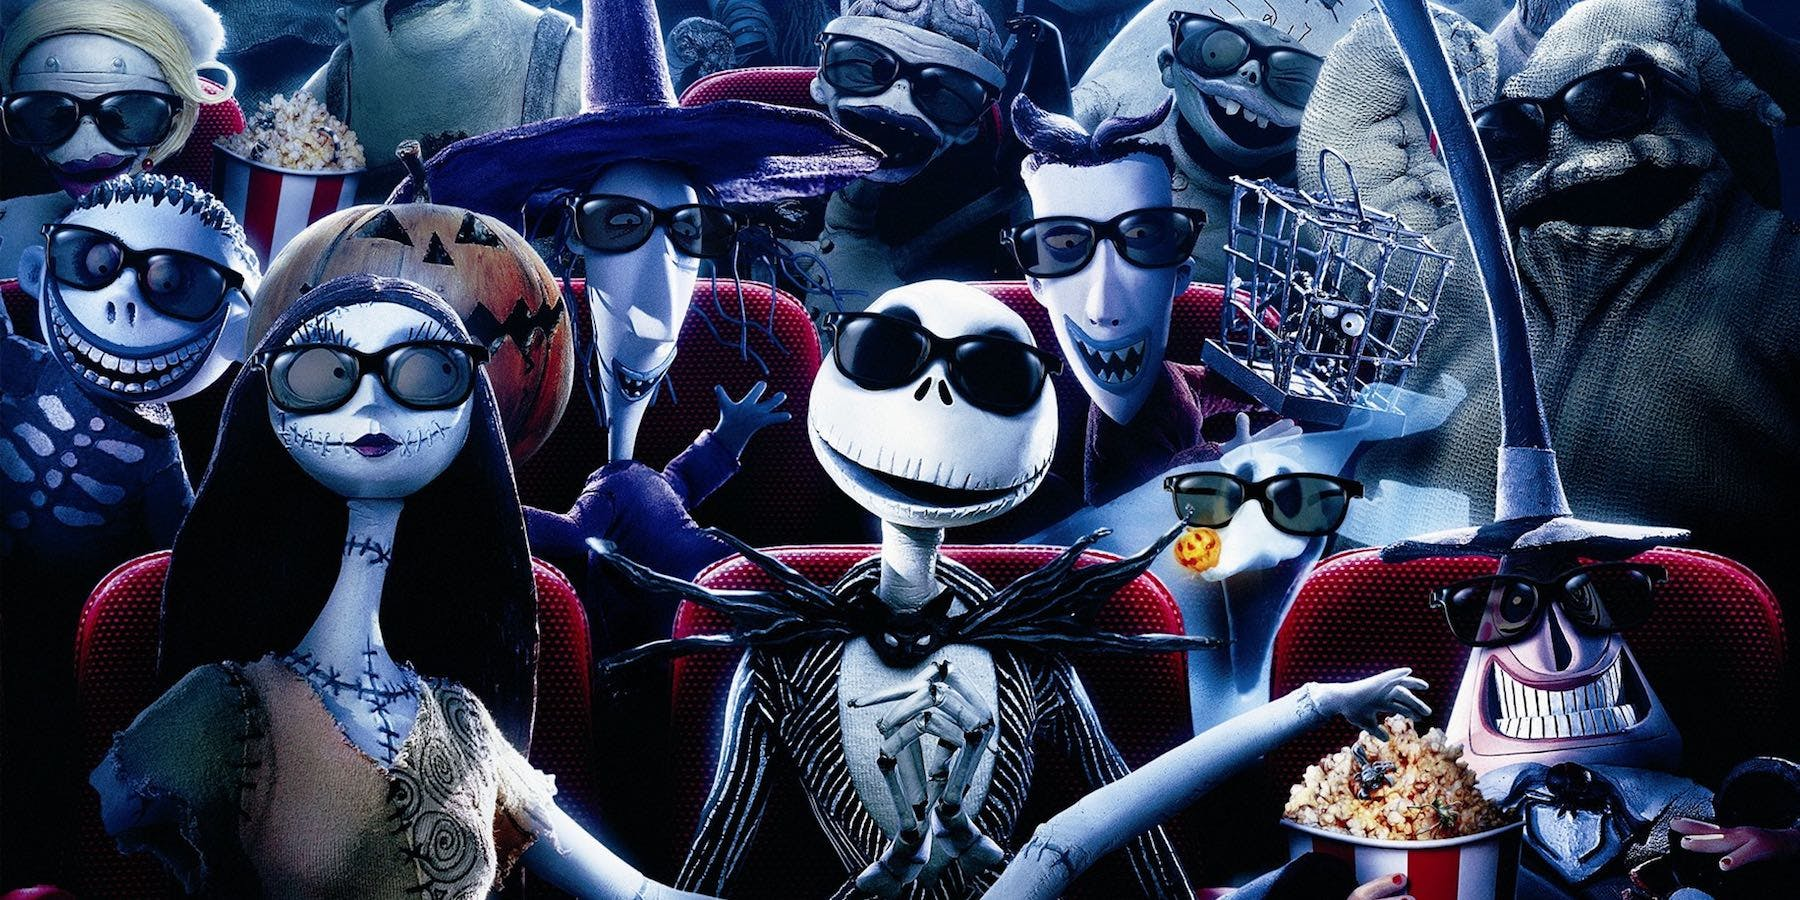 Nightmare Before Christmas Wallpaper Phone New Wallpapers